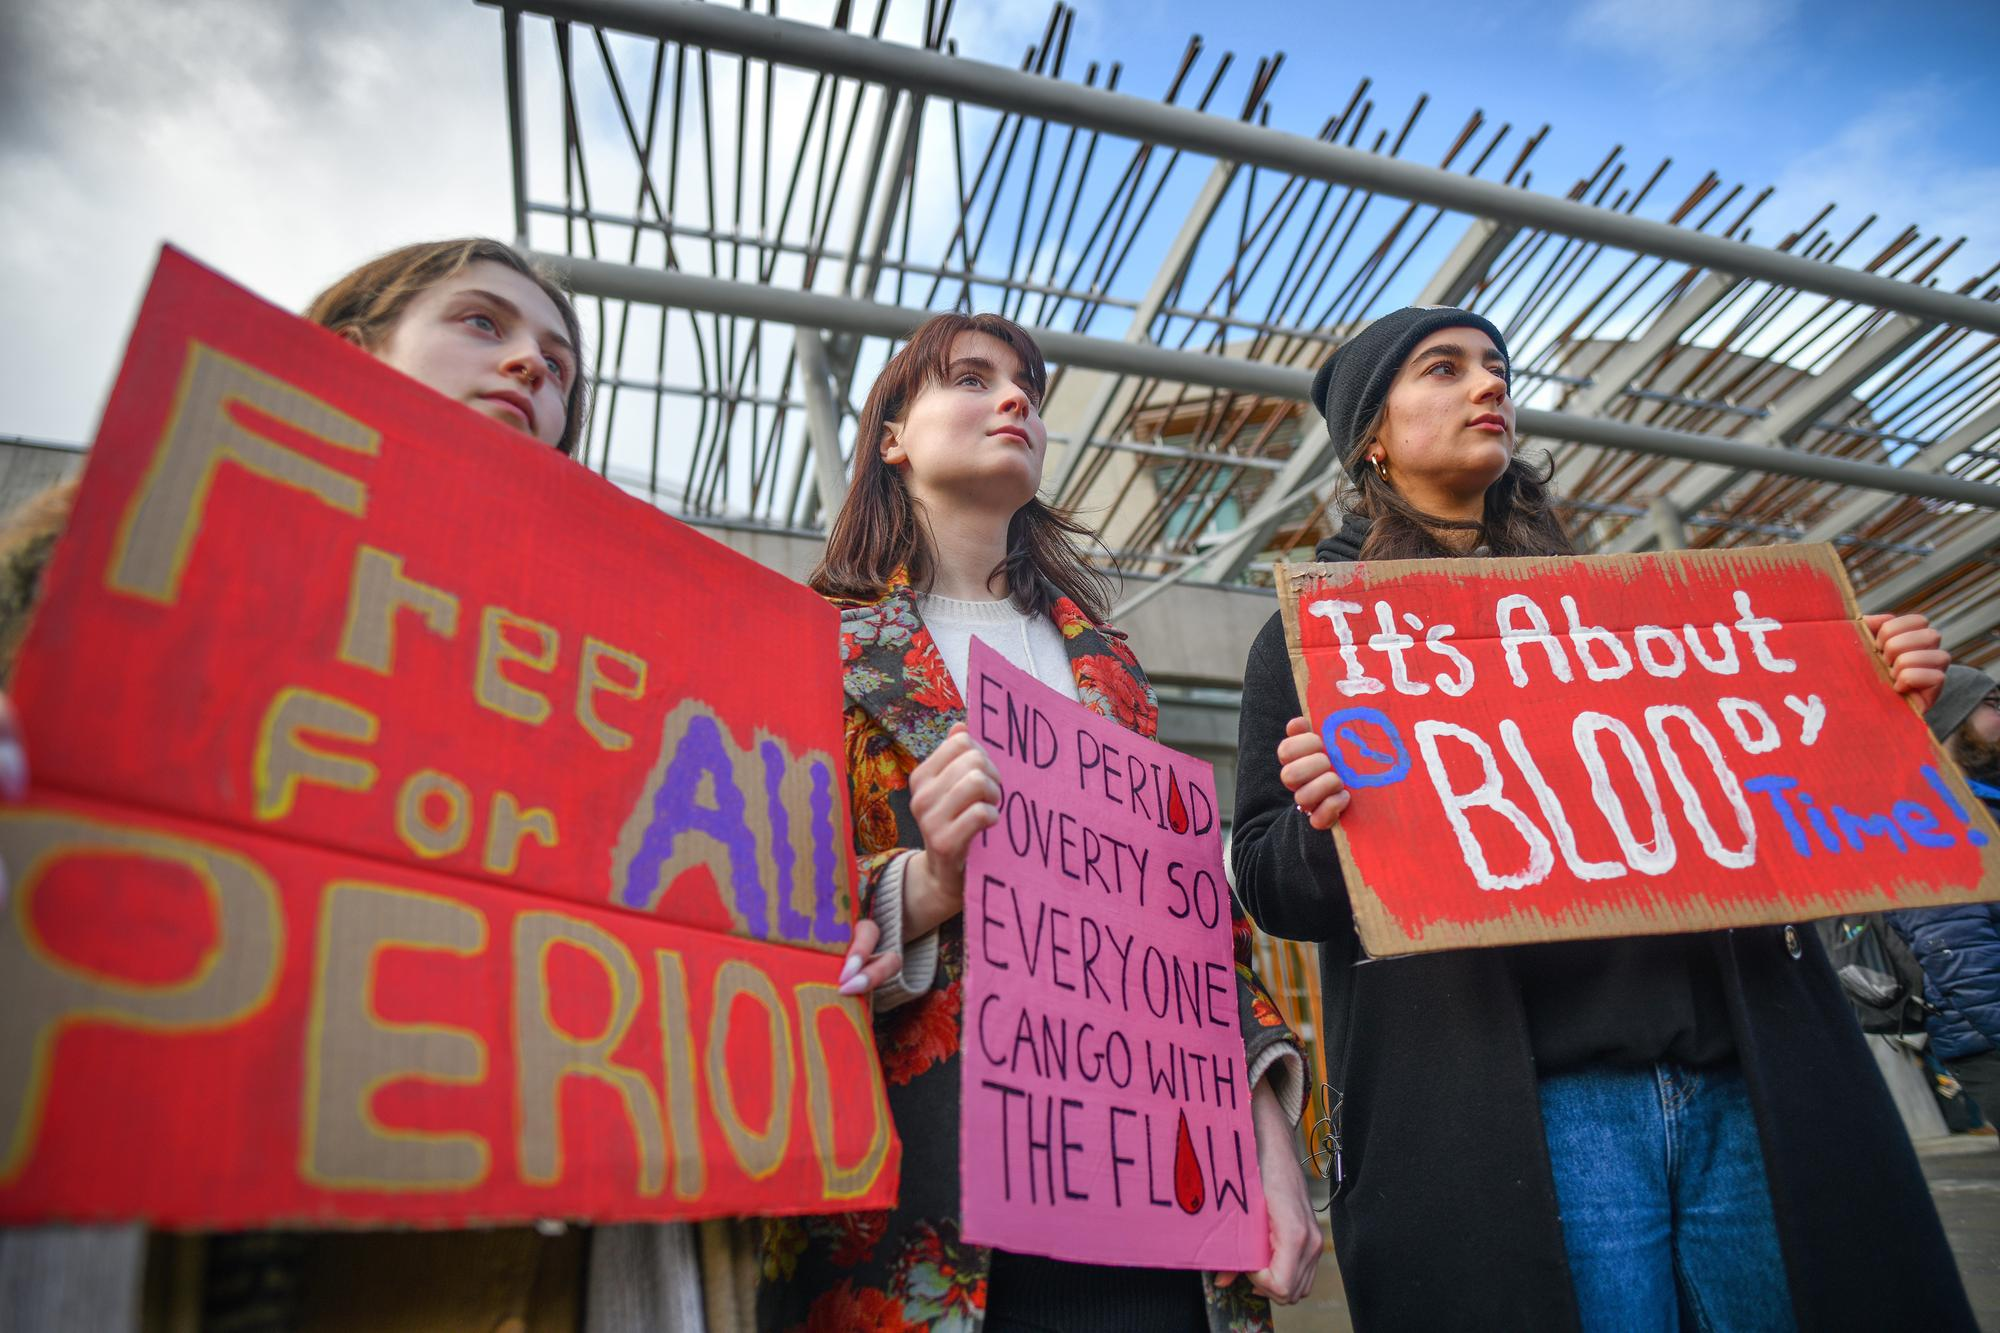 Scottish Parliament votes for universal free period products